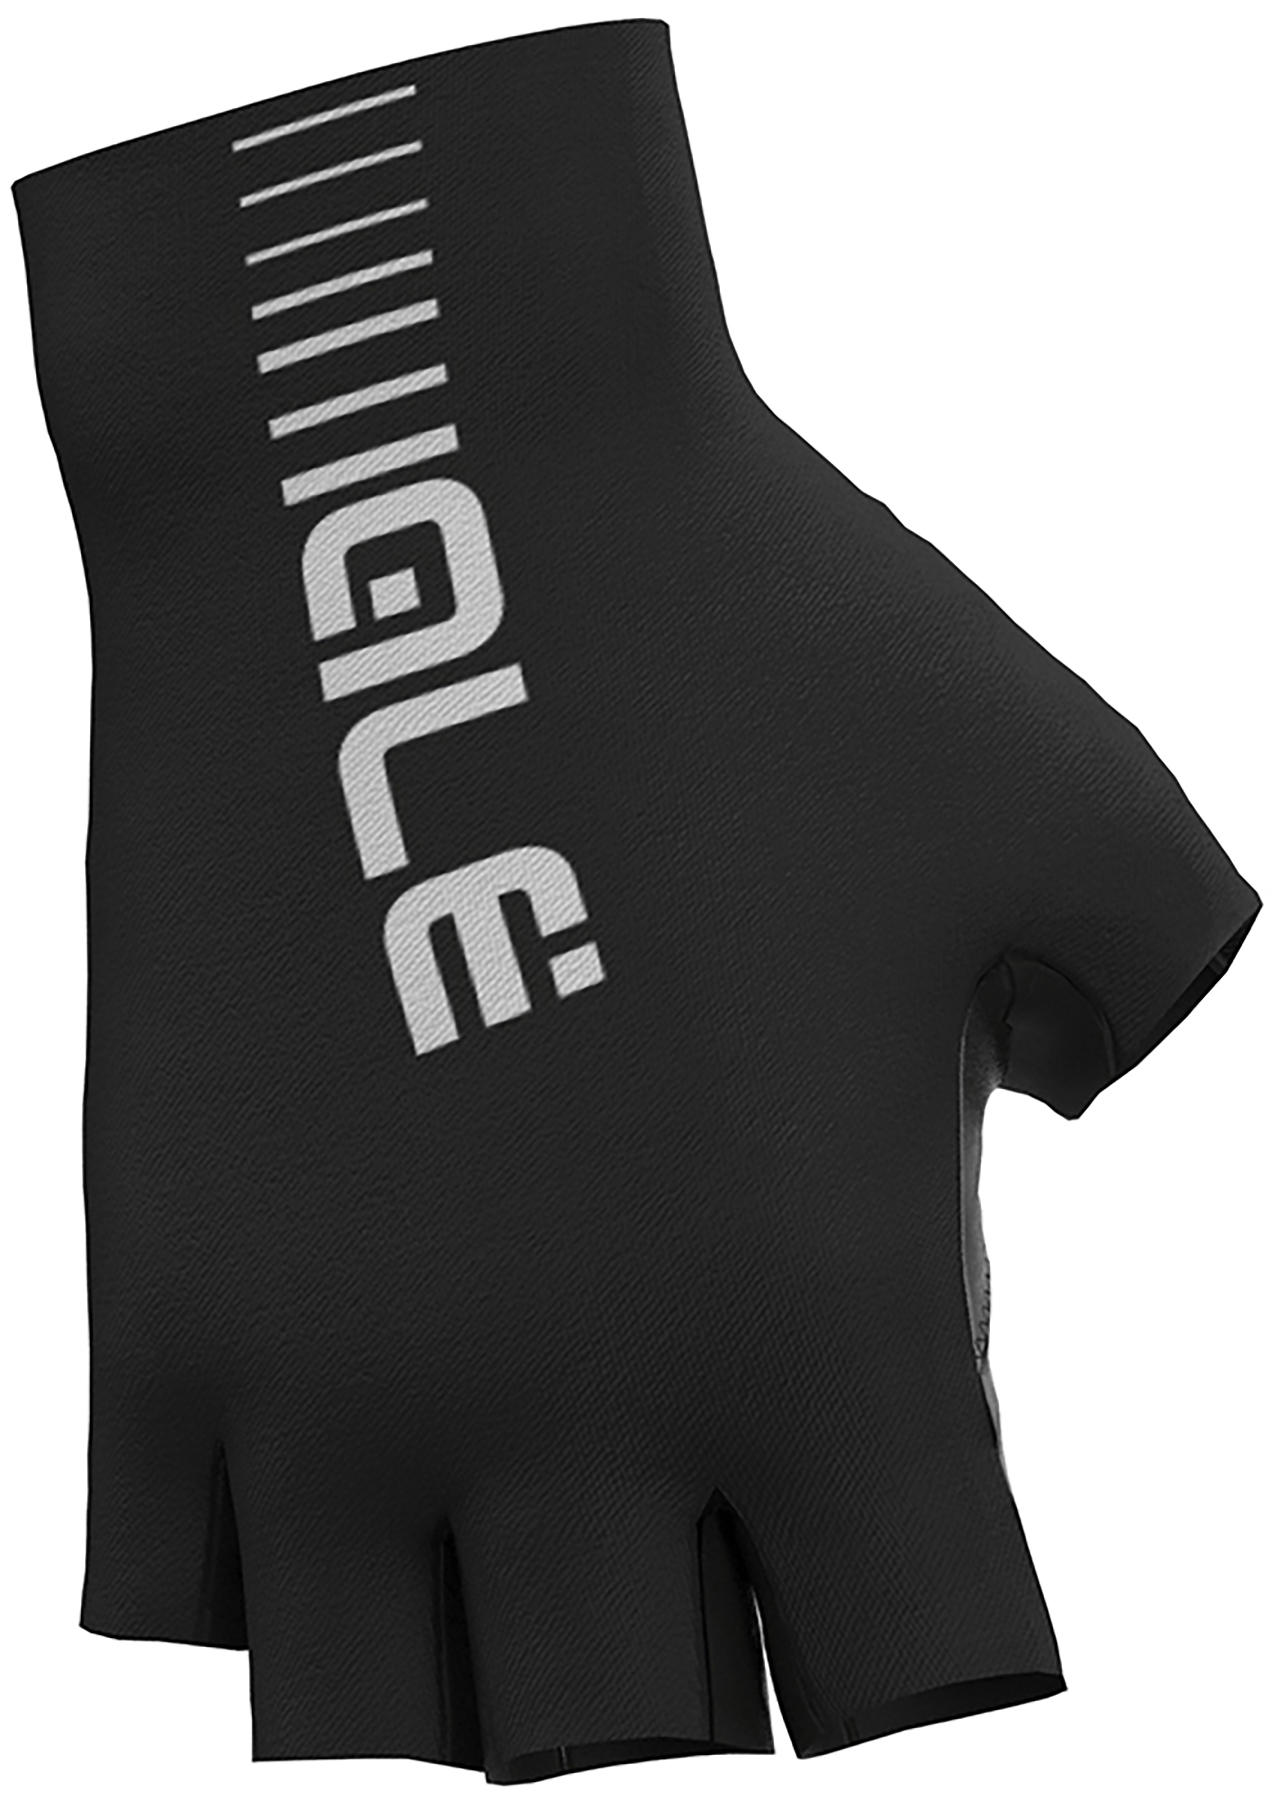 Alé Sunselect Crono Gloves | Handsker